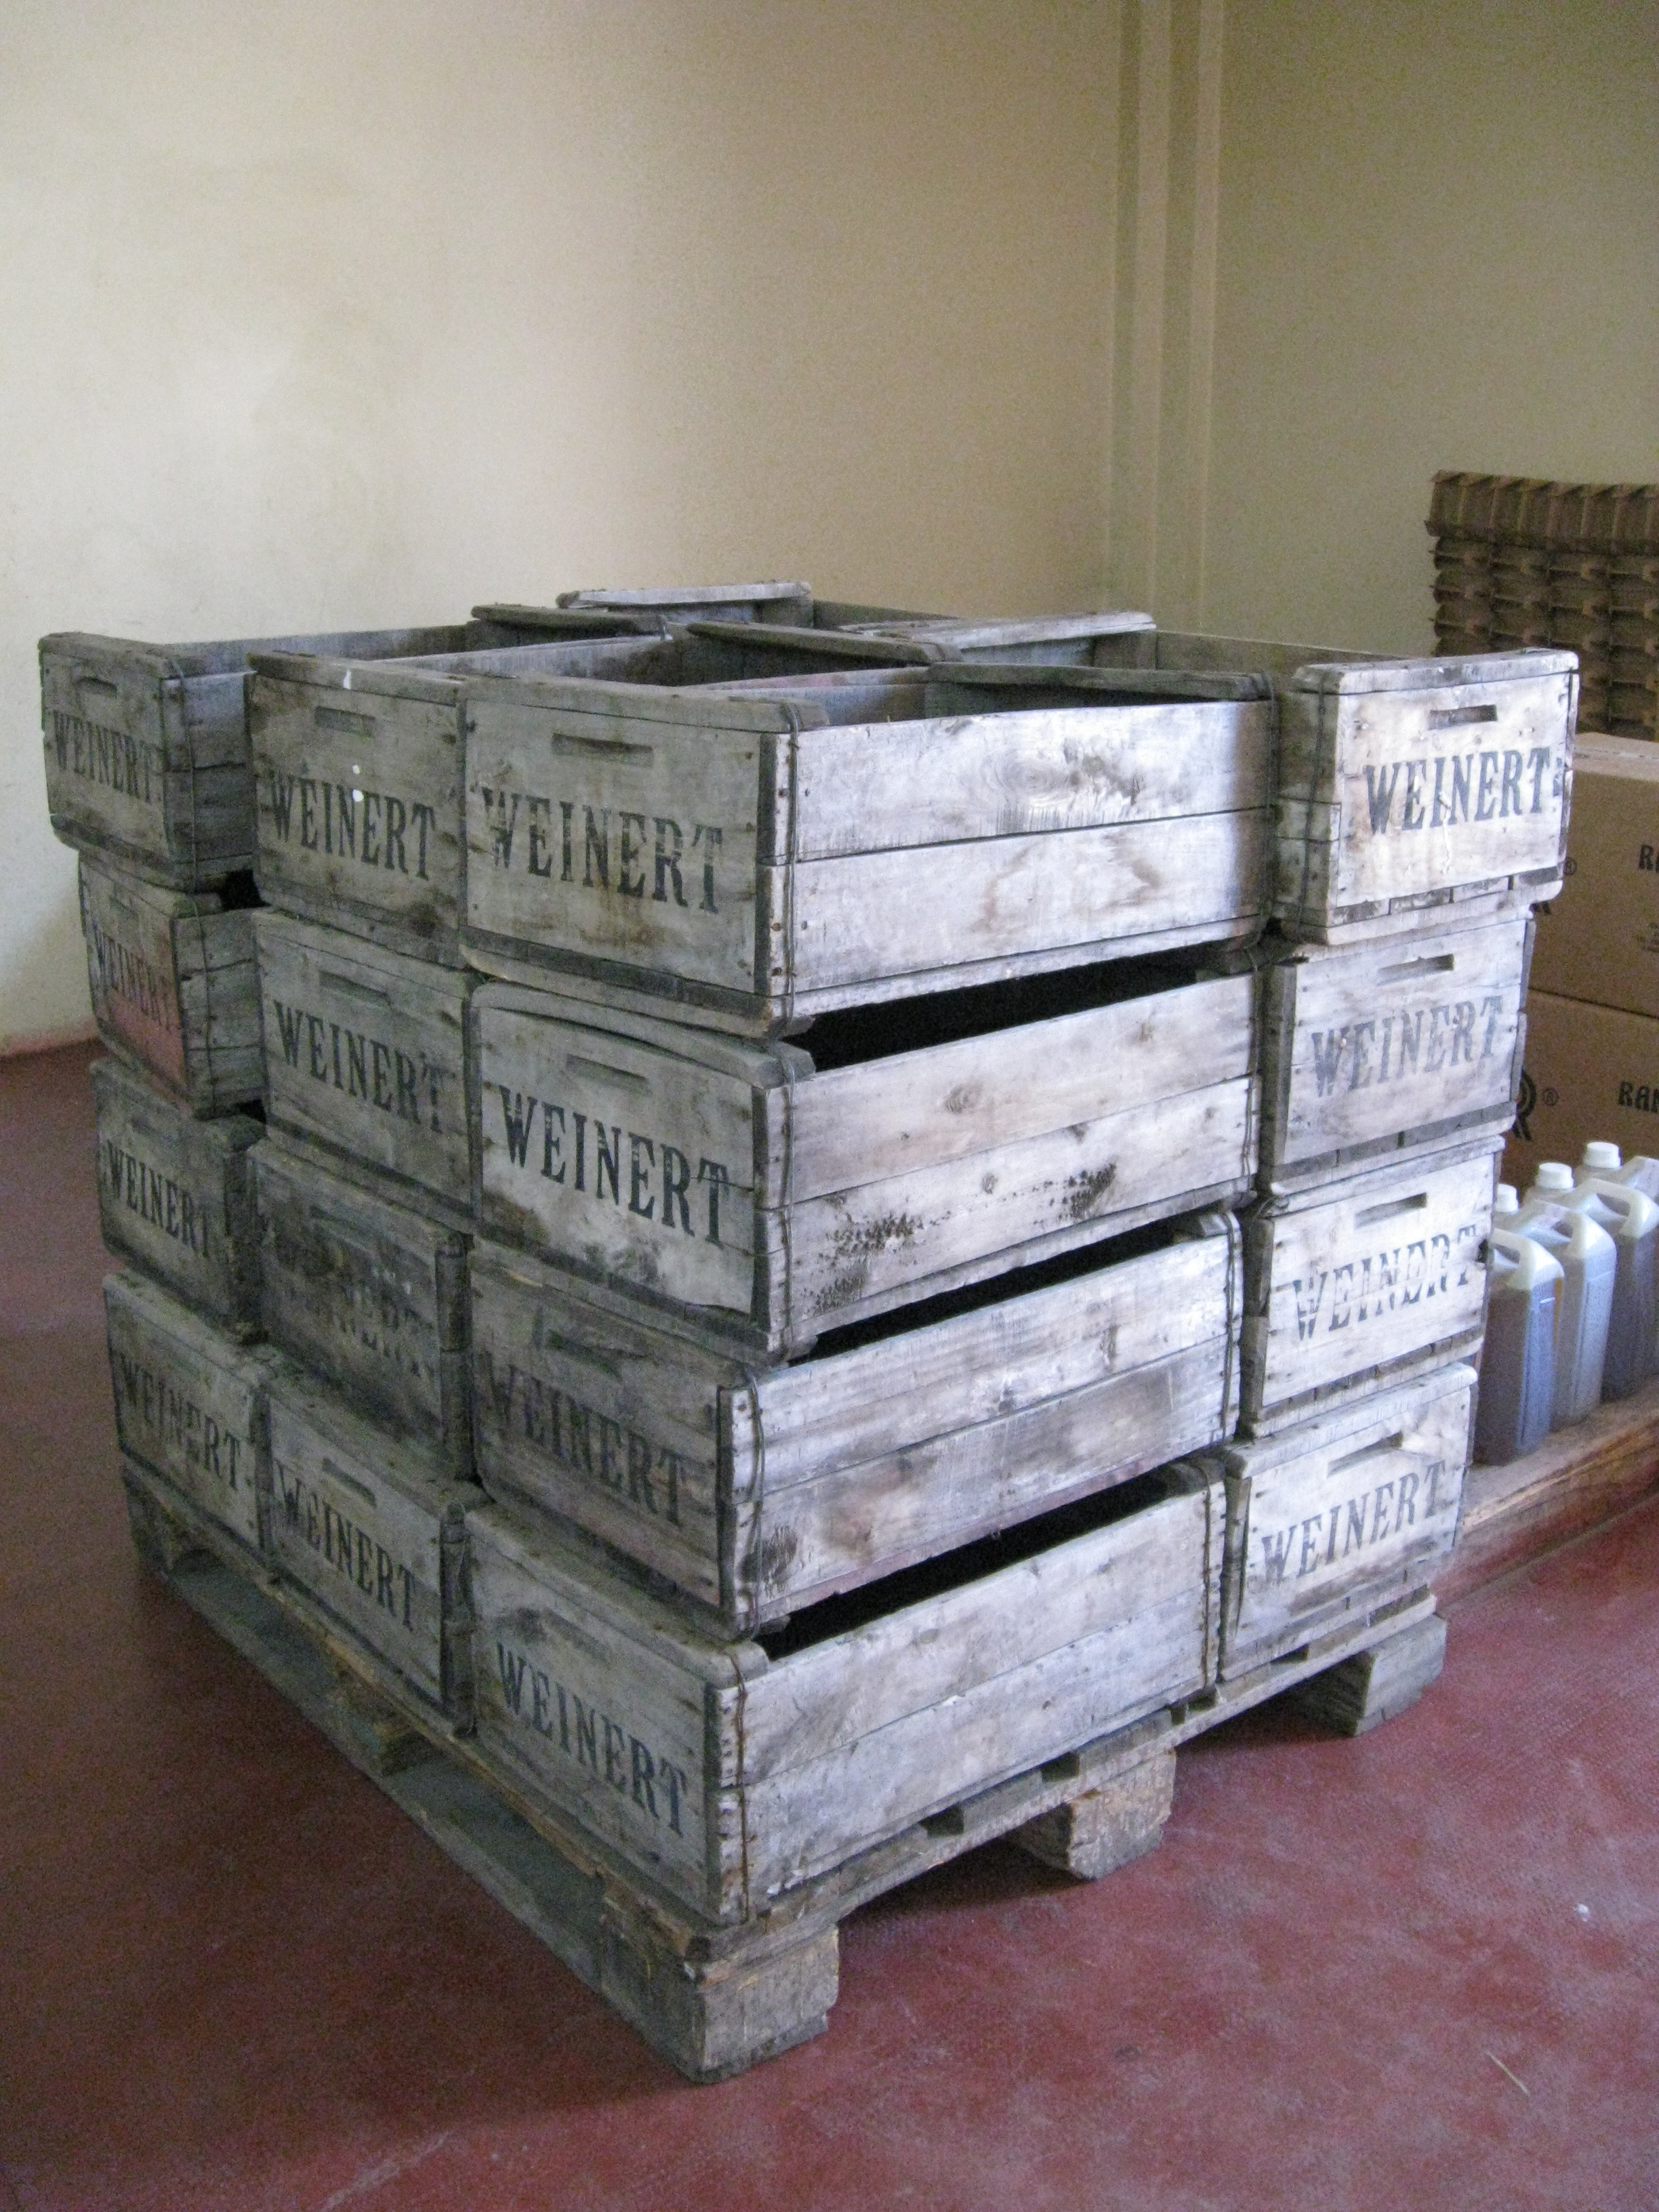 File:Wooden Wine Crates for grape harvesting.jpg - Wikimedia Commons